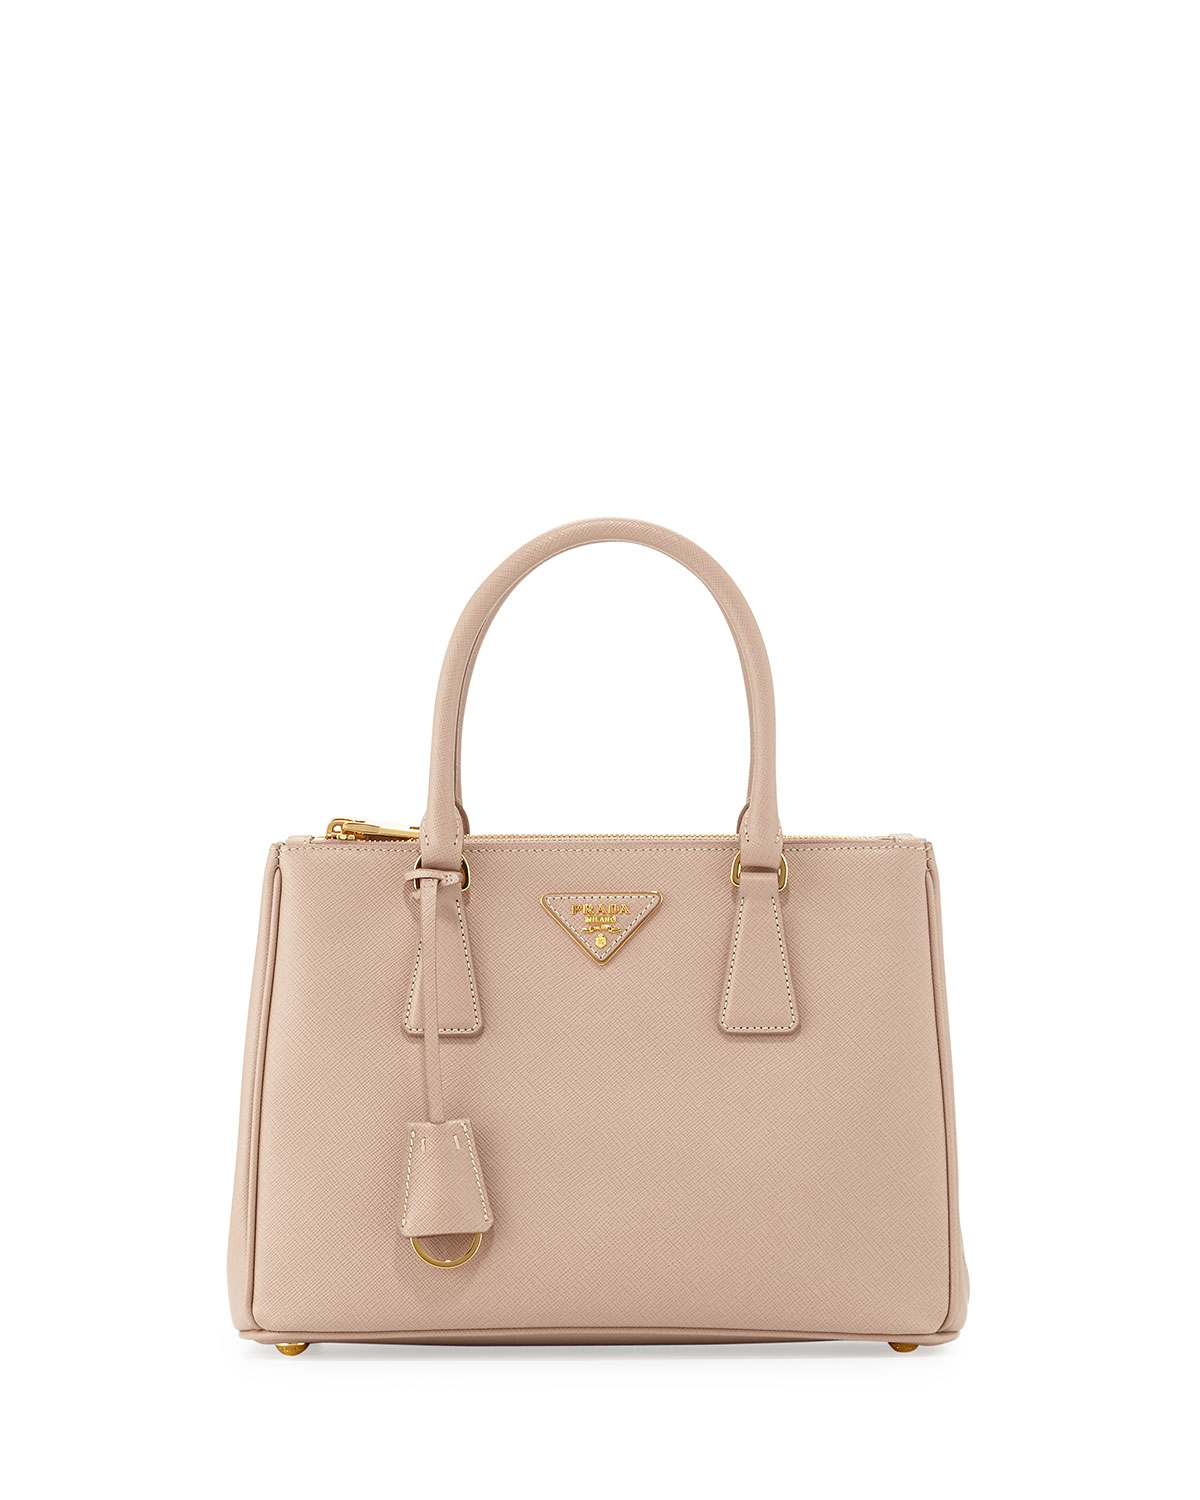 f3265b5bddc4 Prada Saffiano Lux Small Double-Zip Tote Bag, Blush (Cammeo ...